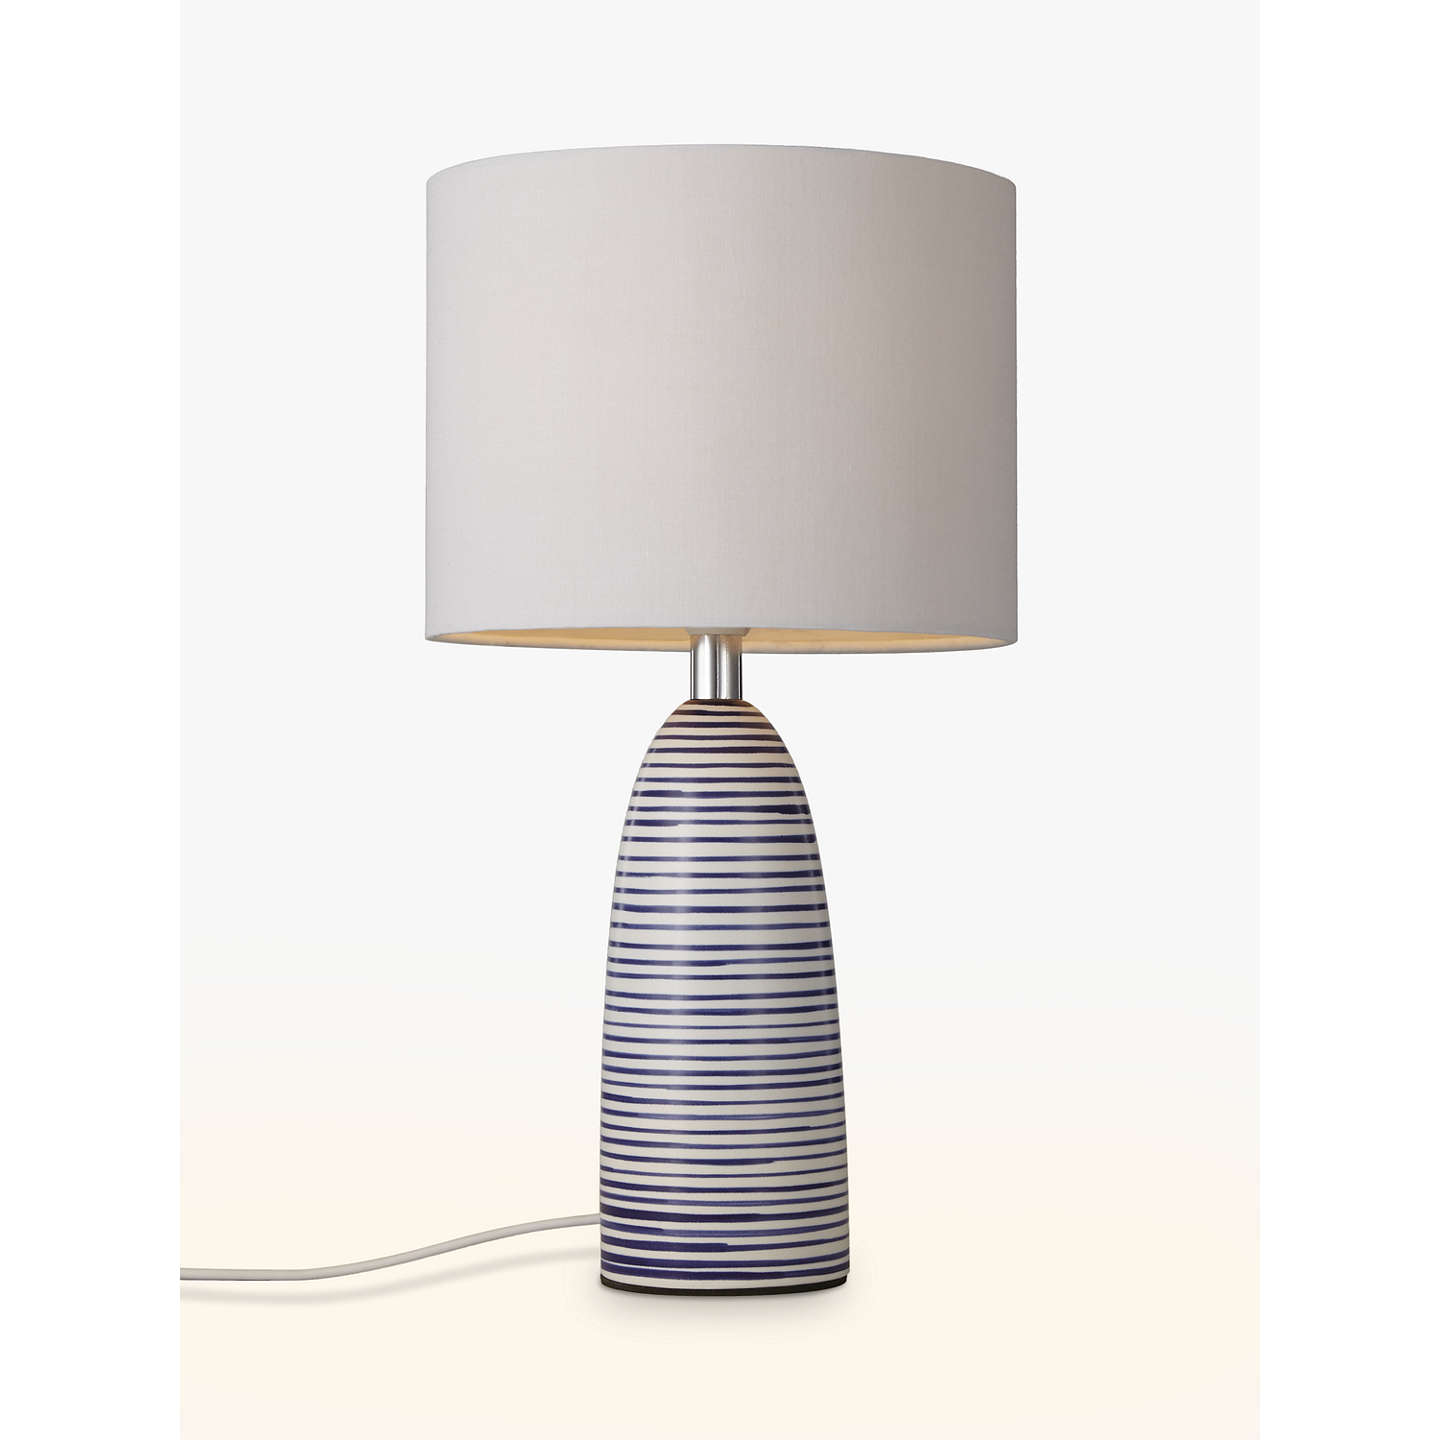 John lewis lolly table lamp at john lewis buyjohn lewis lolly table lamp online at johnlewis aloadofball Gallery